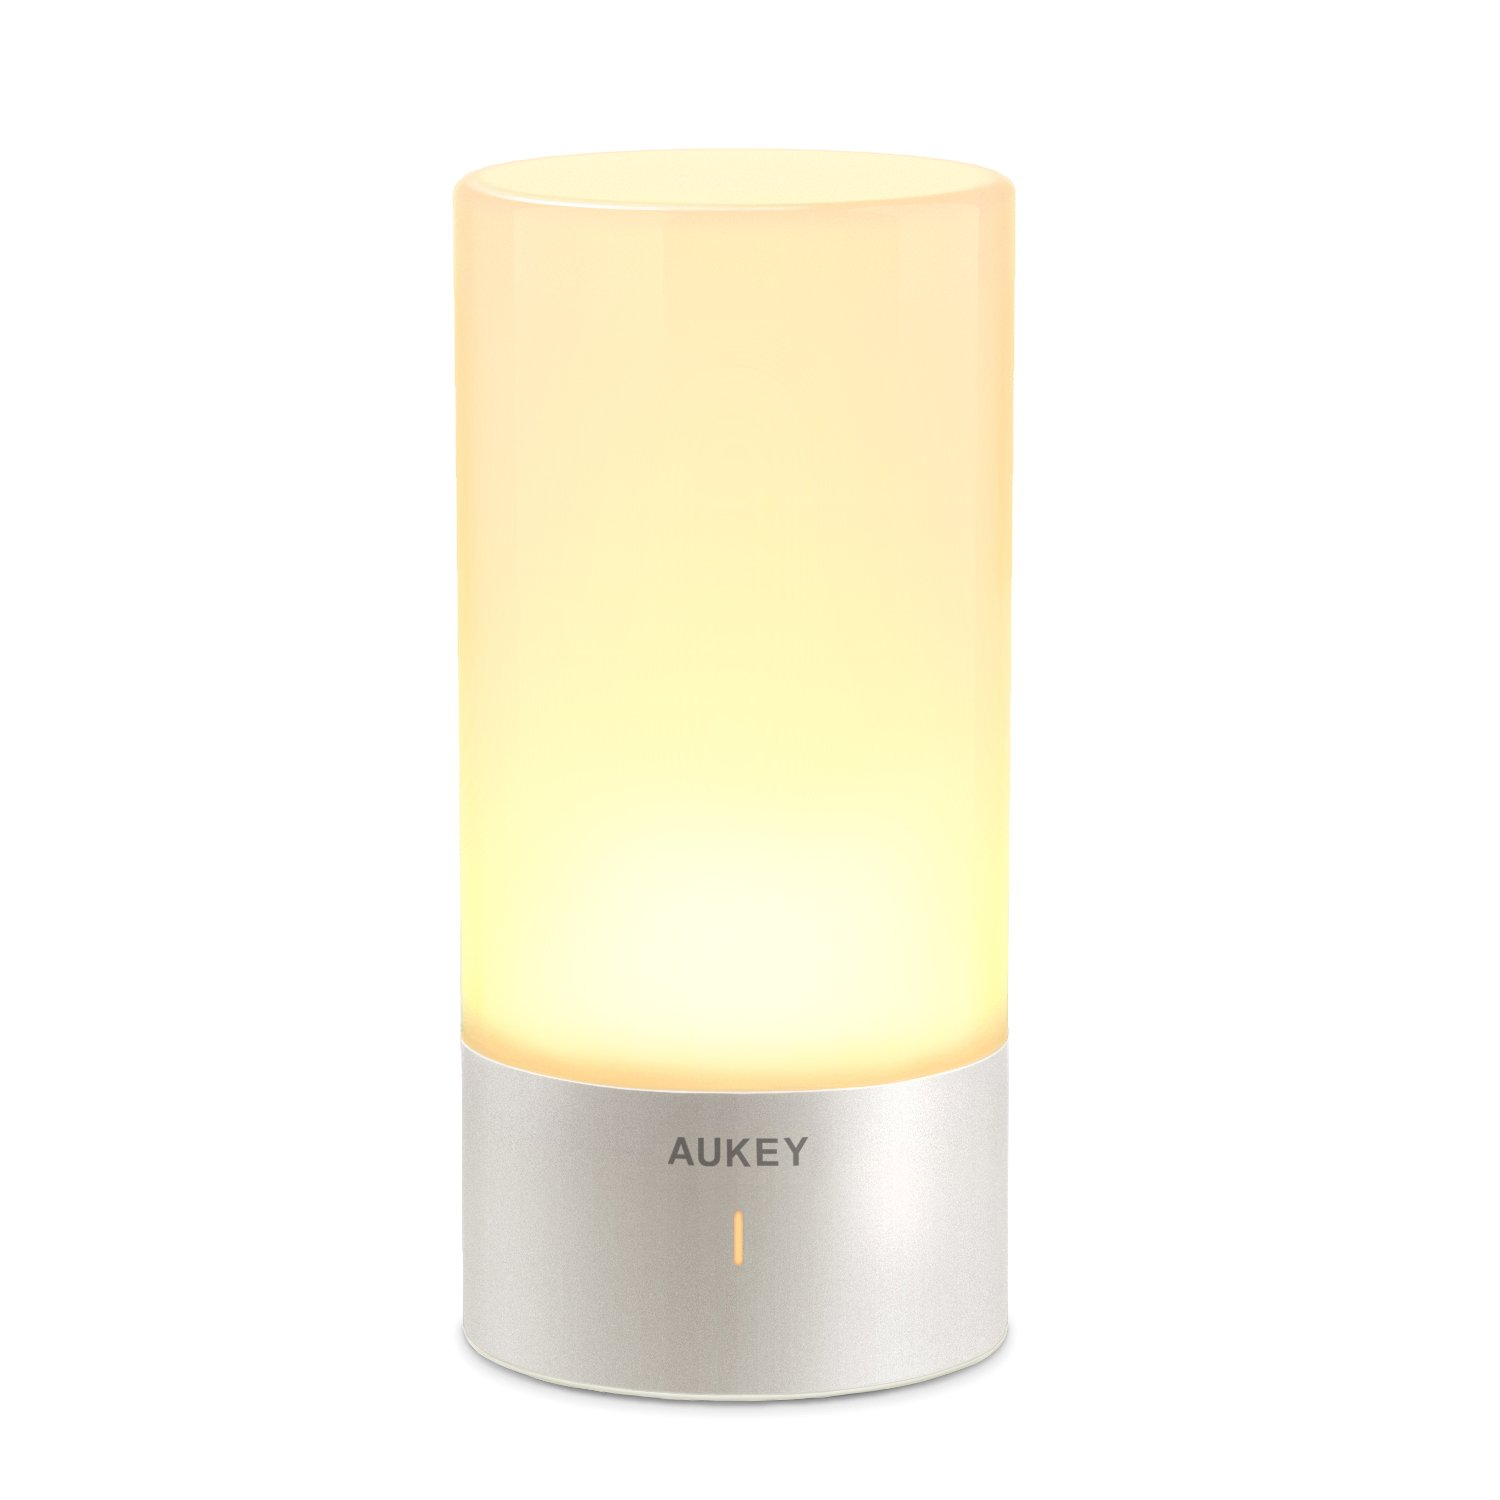 Etonnant AUKEY Table Lamp, Touch Sensor Bedside Lamps + Dimmable Warm White Light U0026  Color Changing RGB For Bedrooms